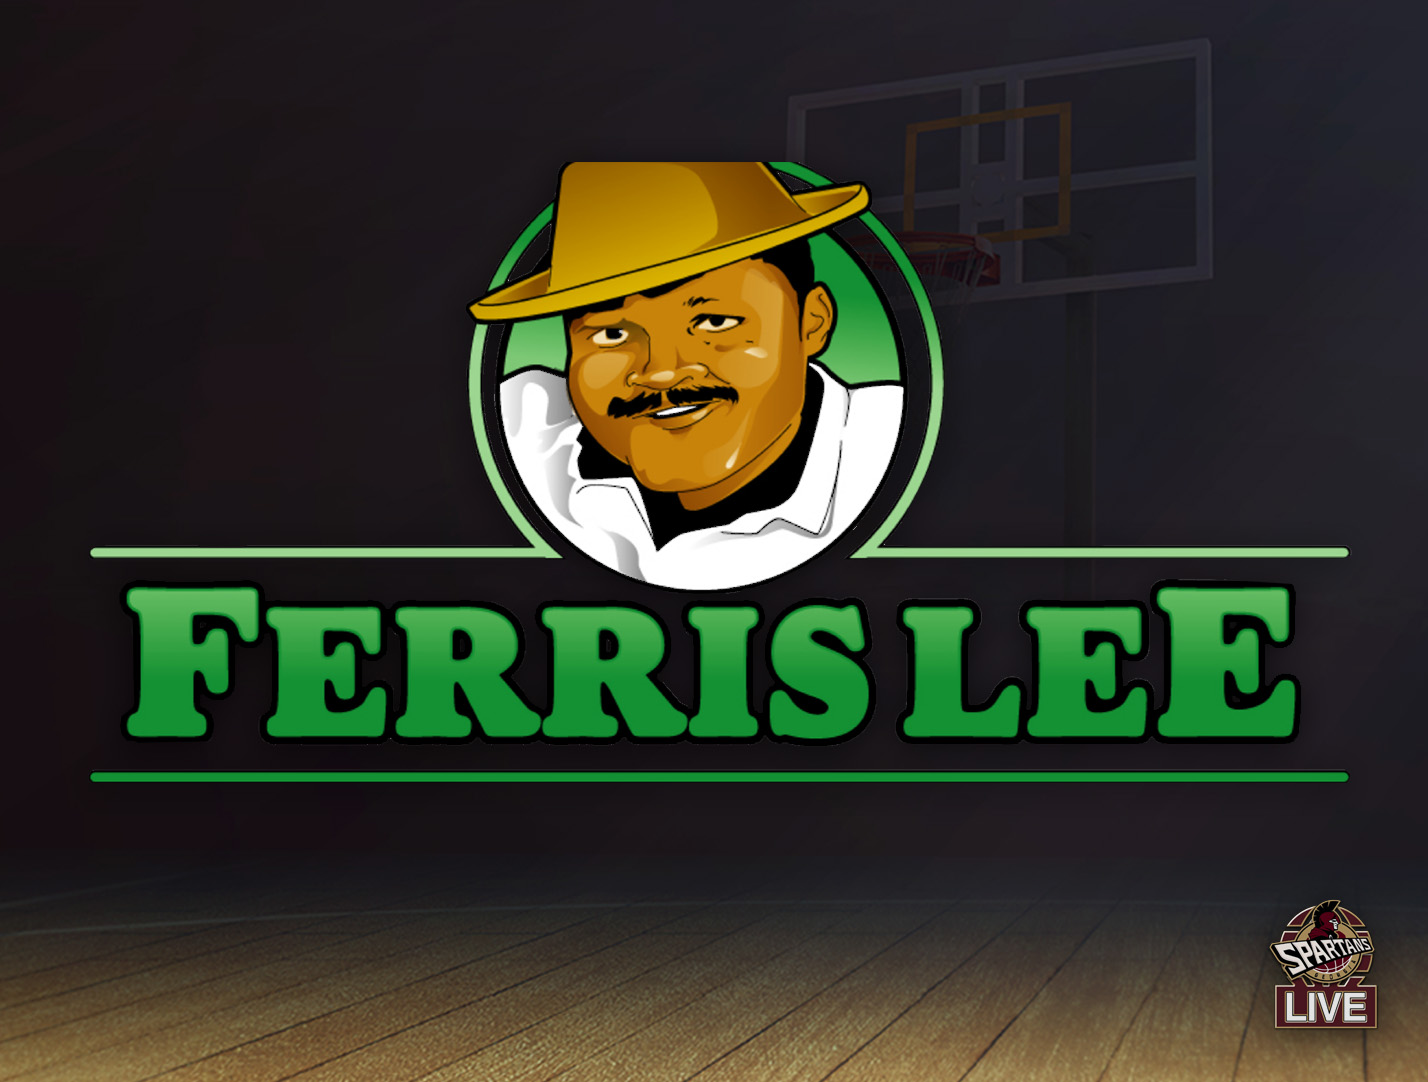 FerrisLee Georgia Spartans Team Sponsor